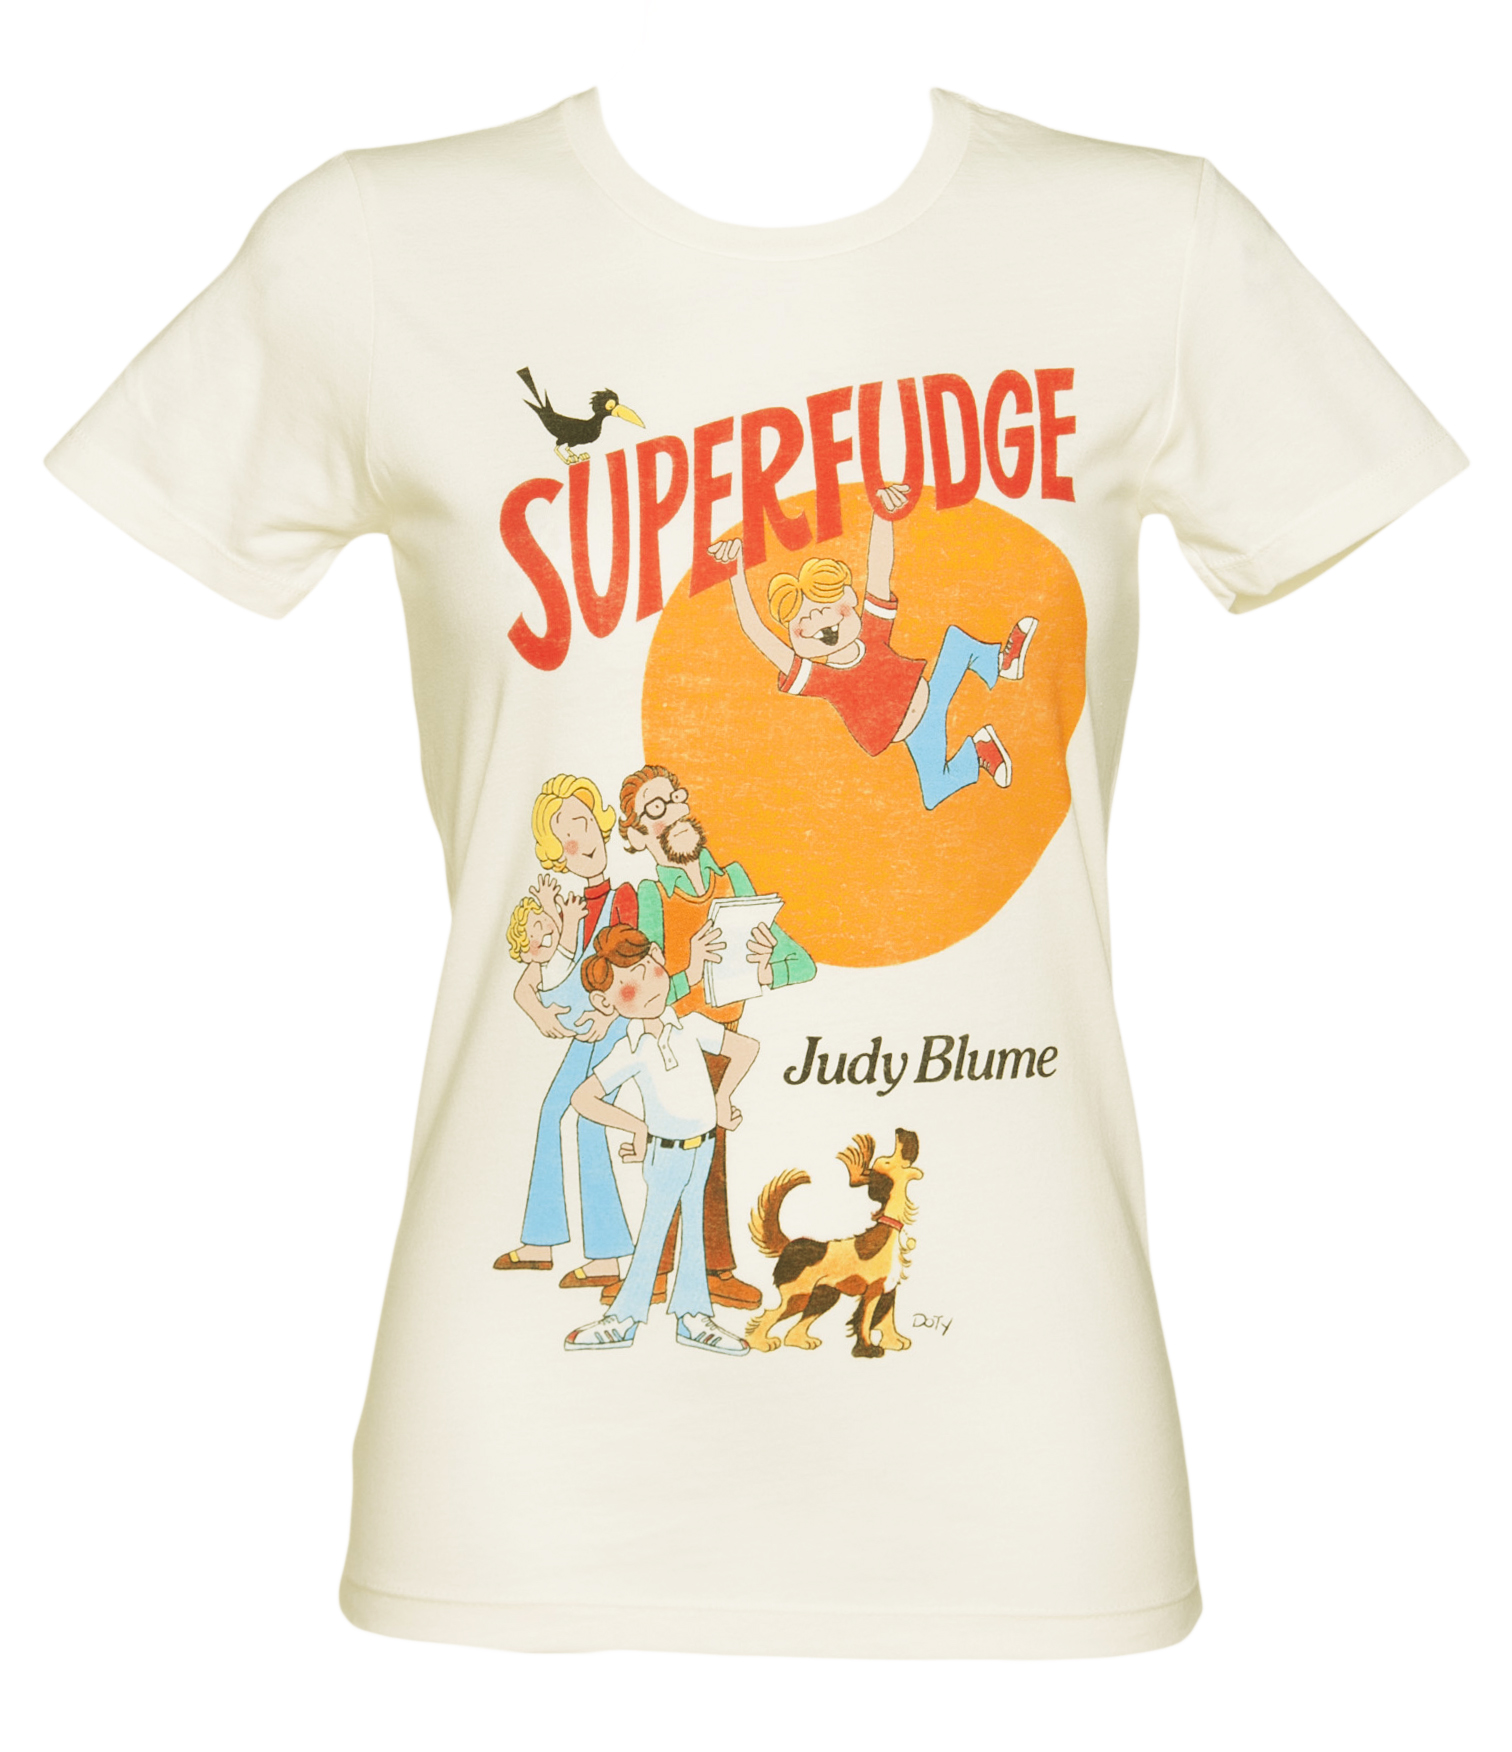 Ladies Superfudge By Judy Blume Book Cover T-Shirt from Out Of Print